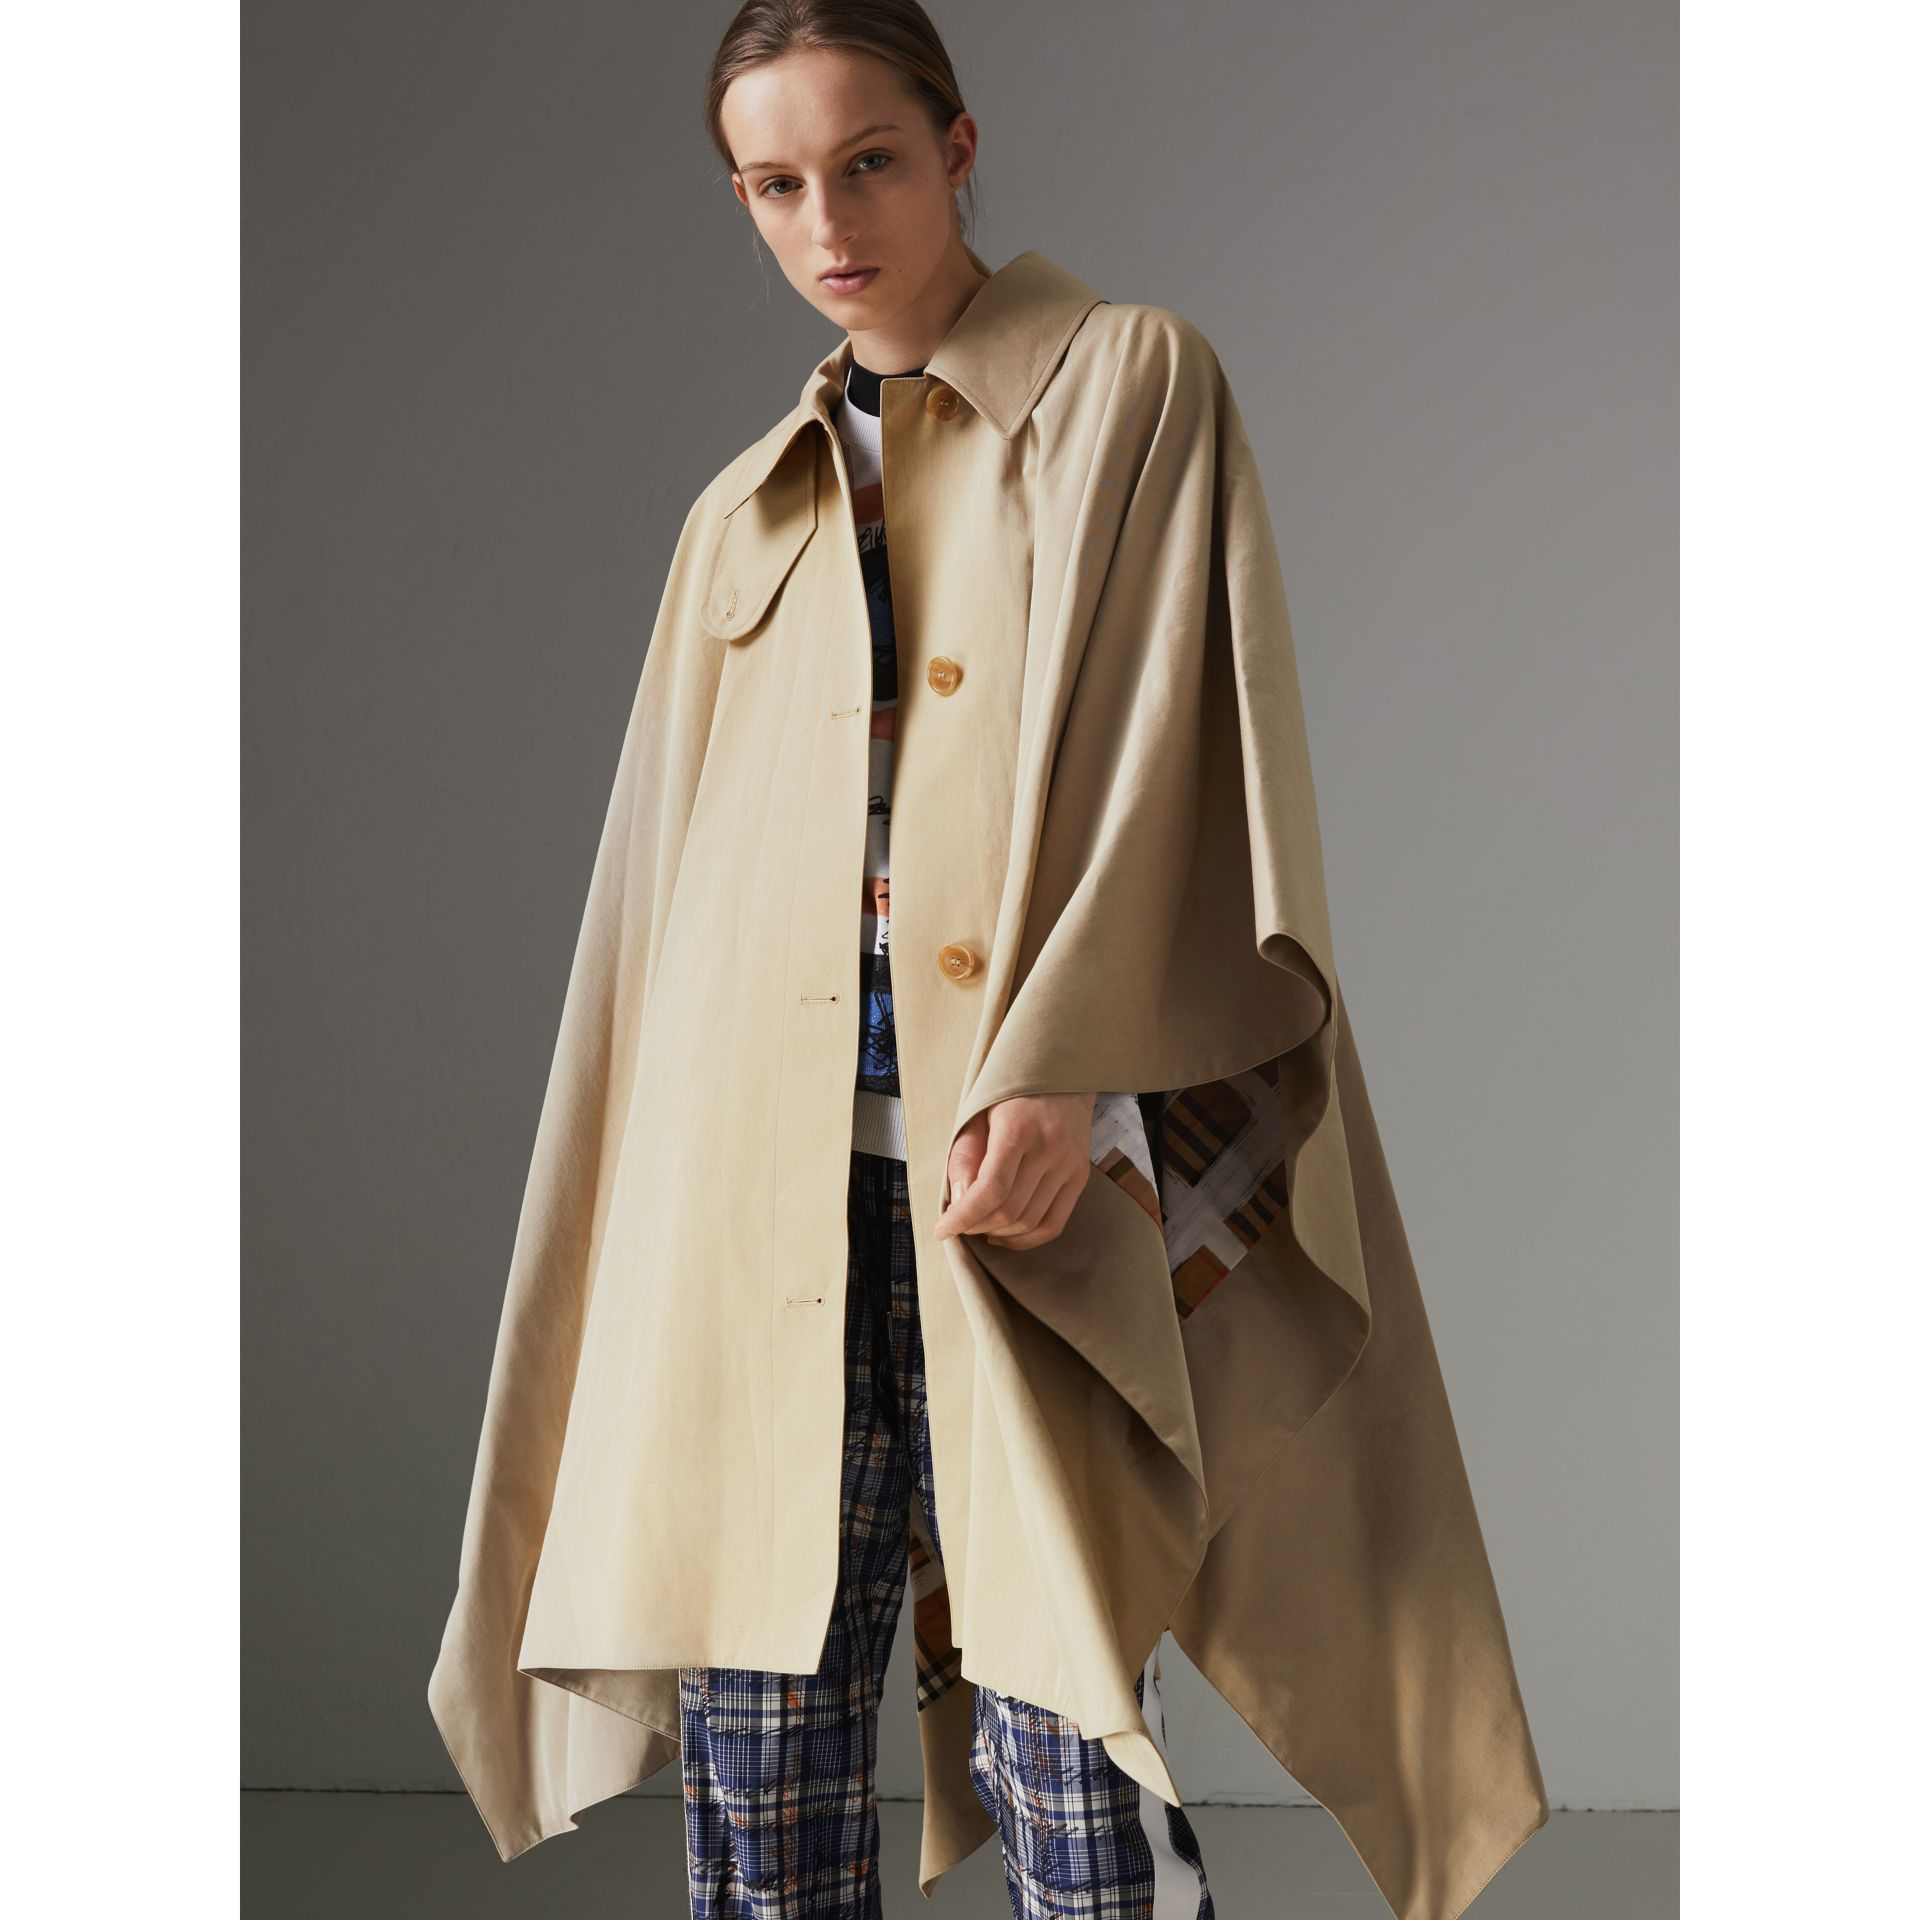 Tropical Gabardine Asymmetric Cape in Oatmeal - Women | Burberry United States - gallery image 5